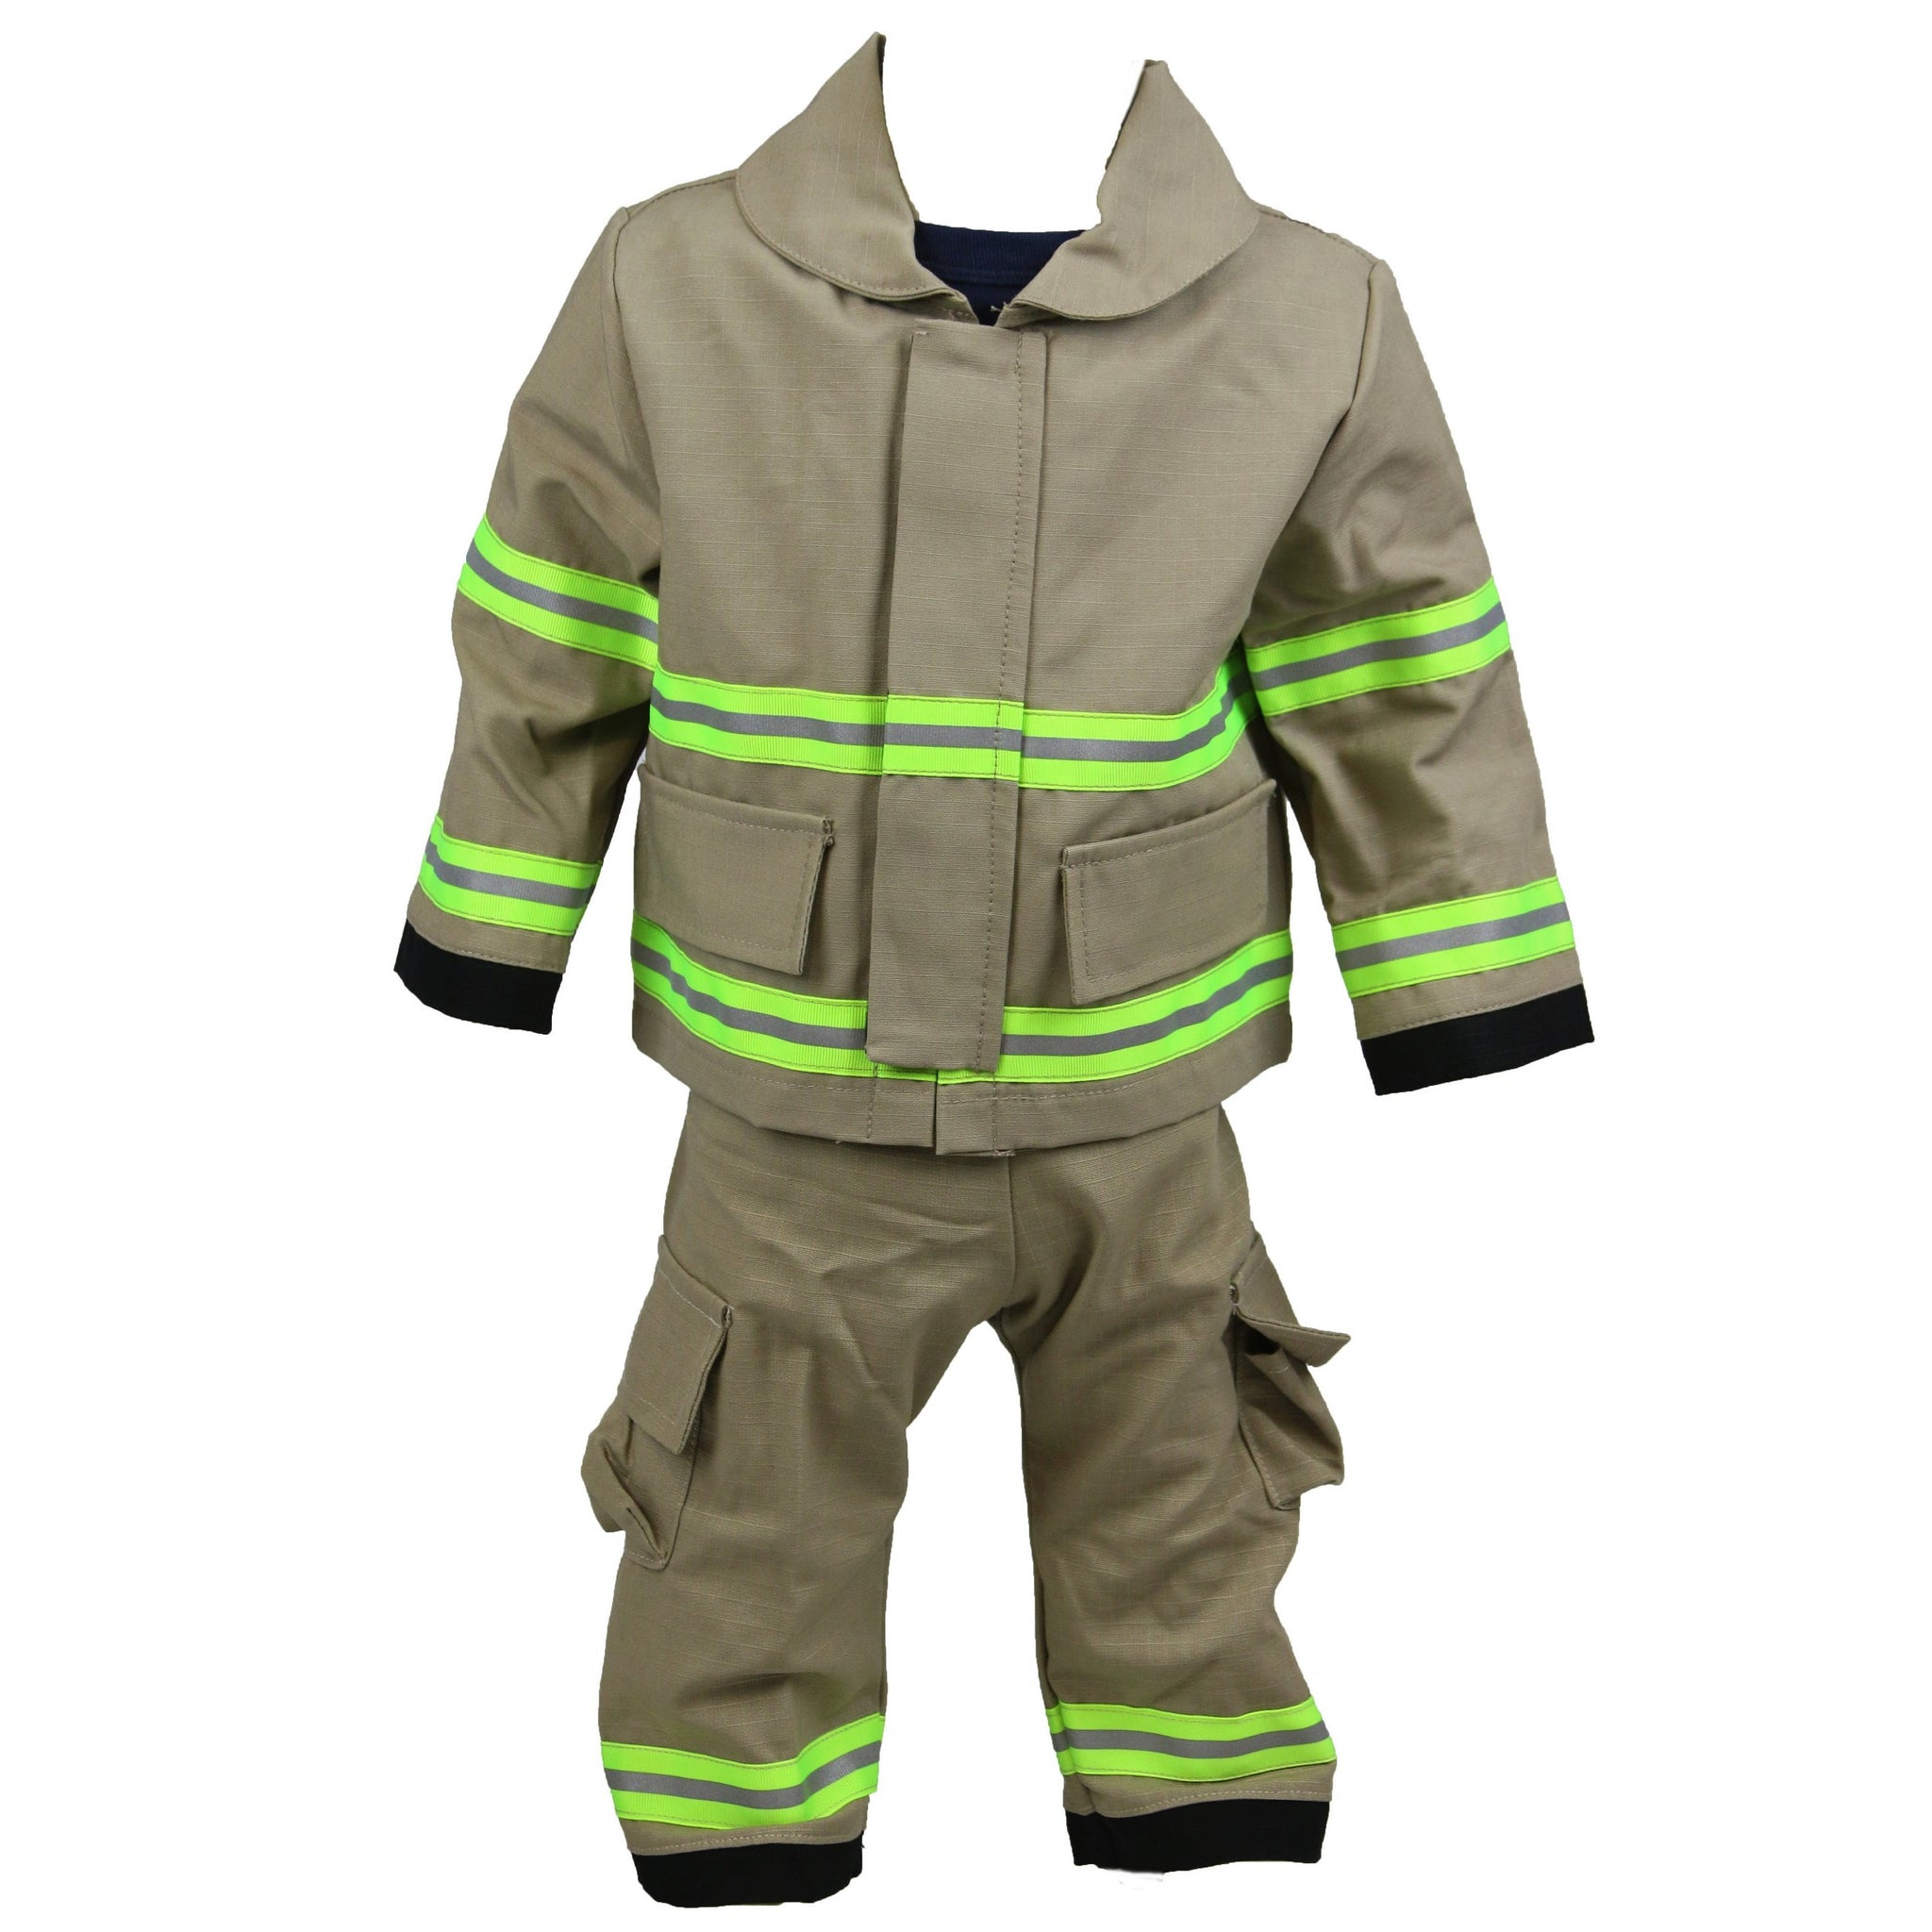 Personalized Baby Firefighter FULL TAN Outfit 3-Piece Set